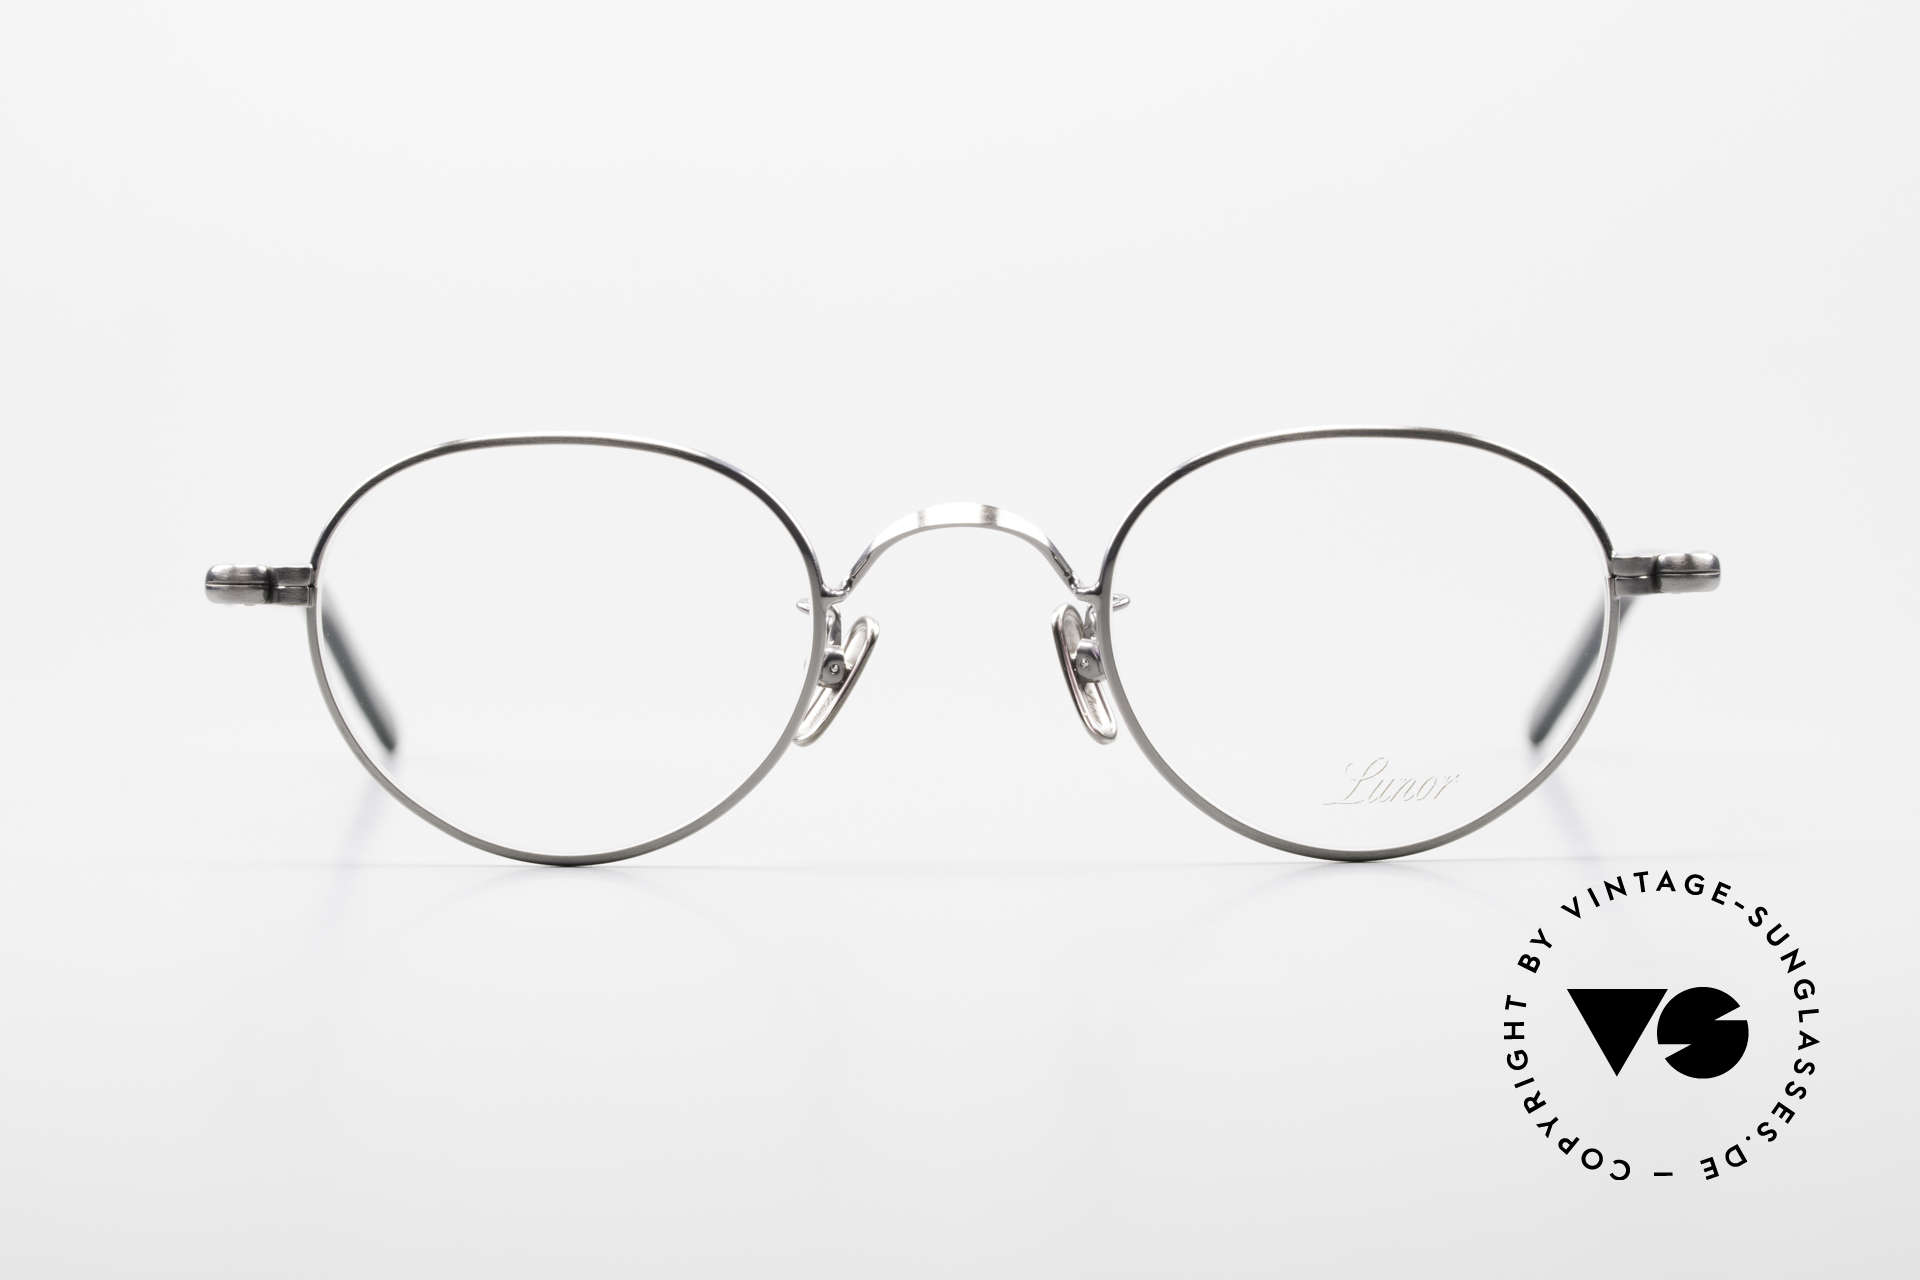 Lunor VA 107 Panto Style Antique Silver AS, LUNOR: honest craftsmanship with attention to details, Made for Men and Women